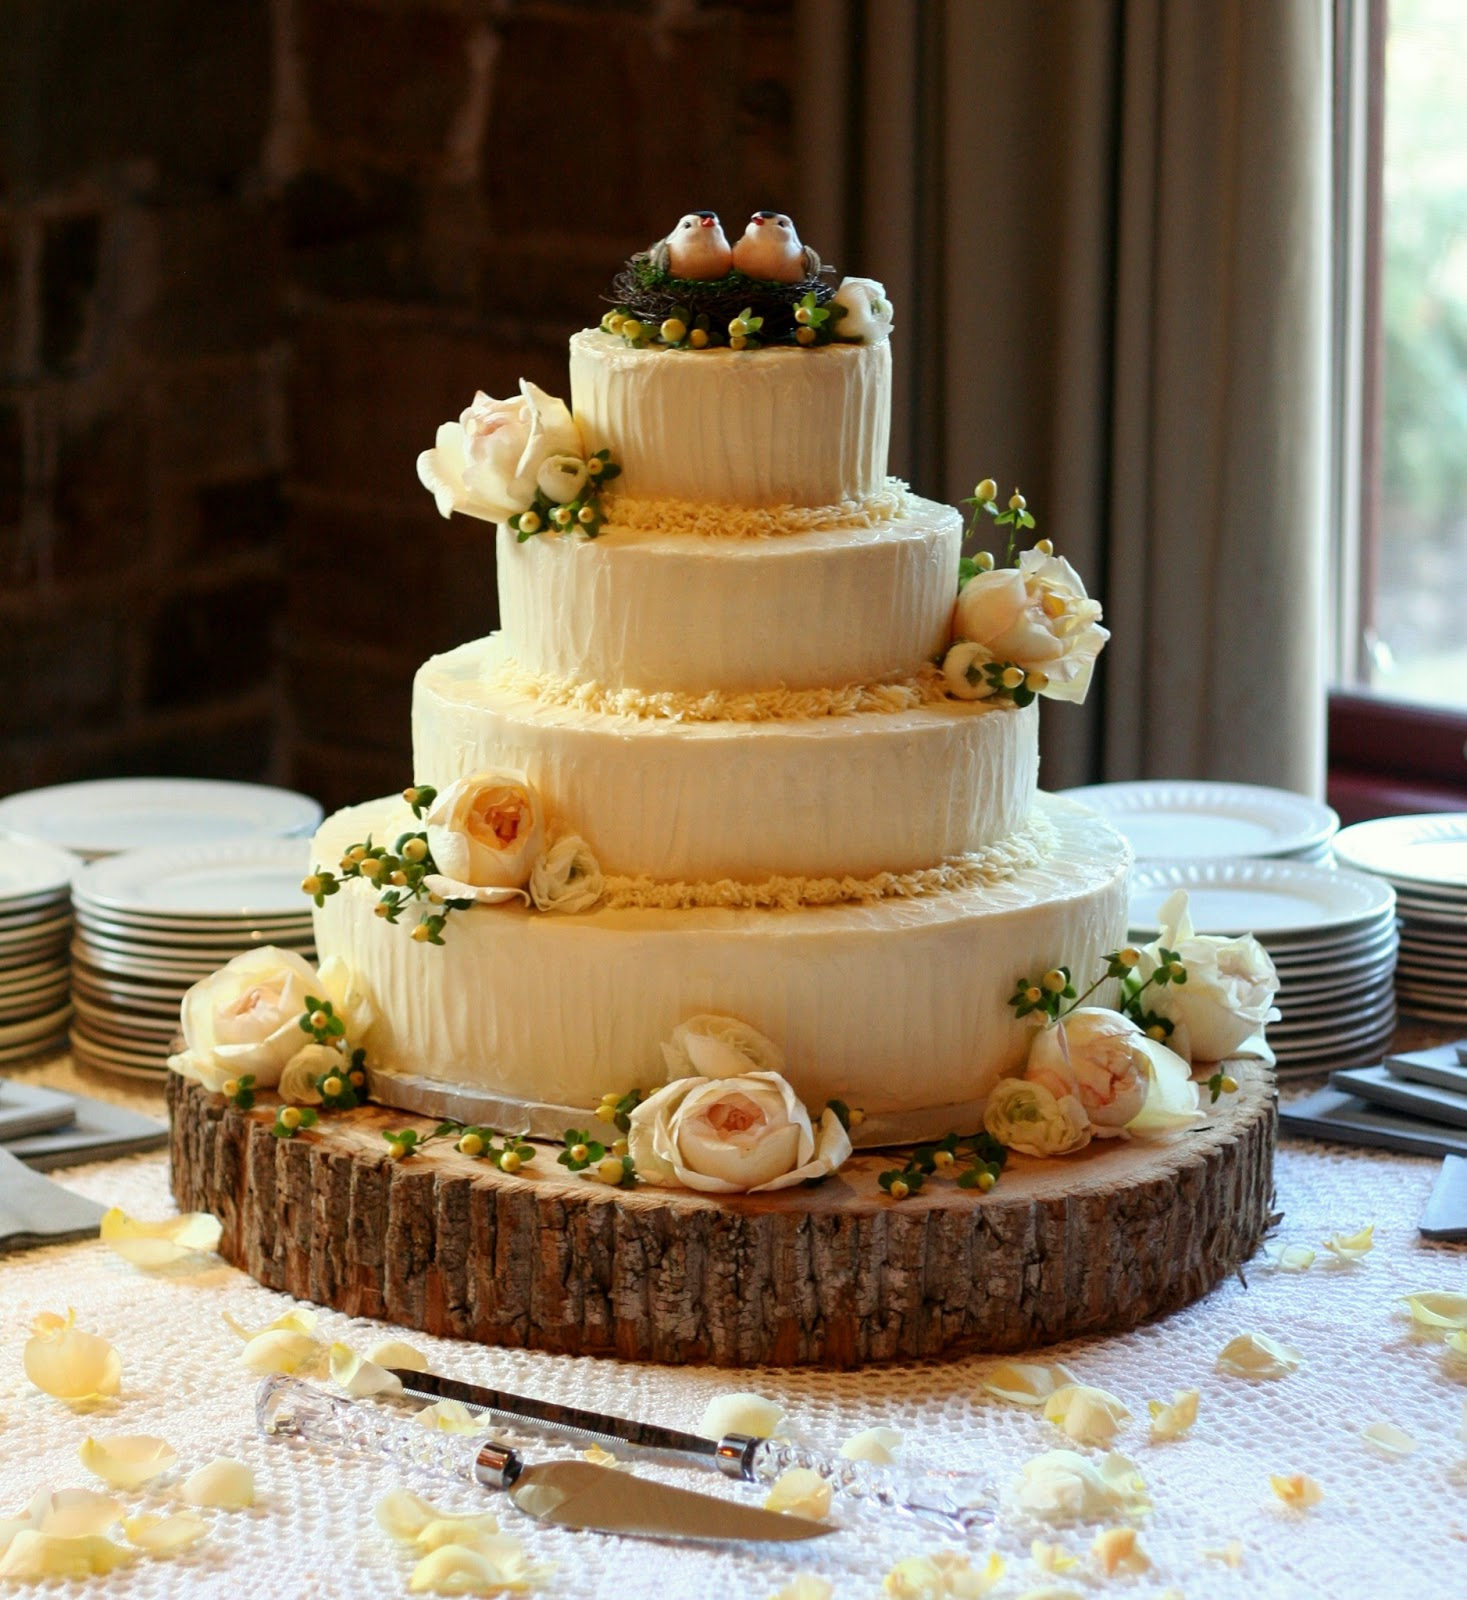 Wedding Cakes: 6 Stunning Rustic Wedding Cake Ideas